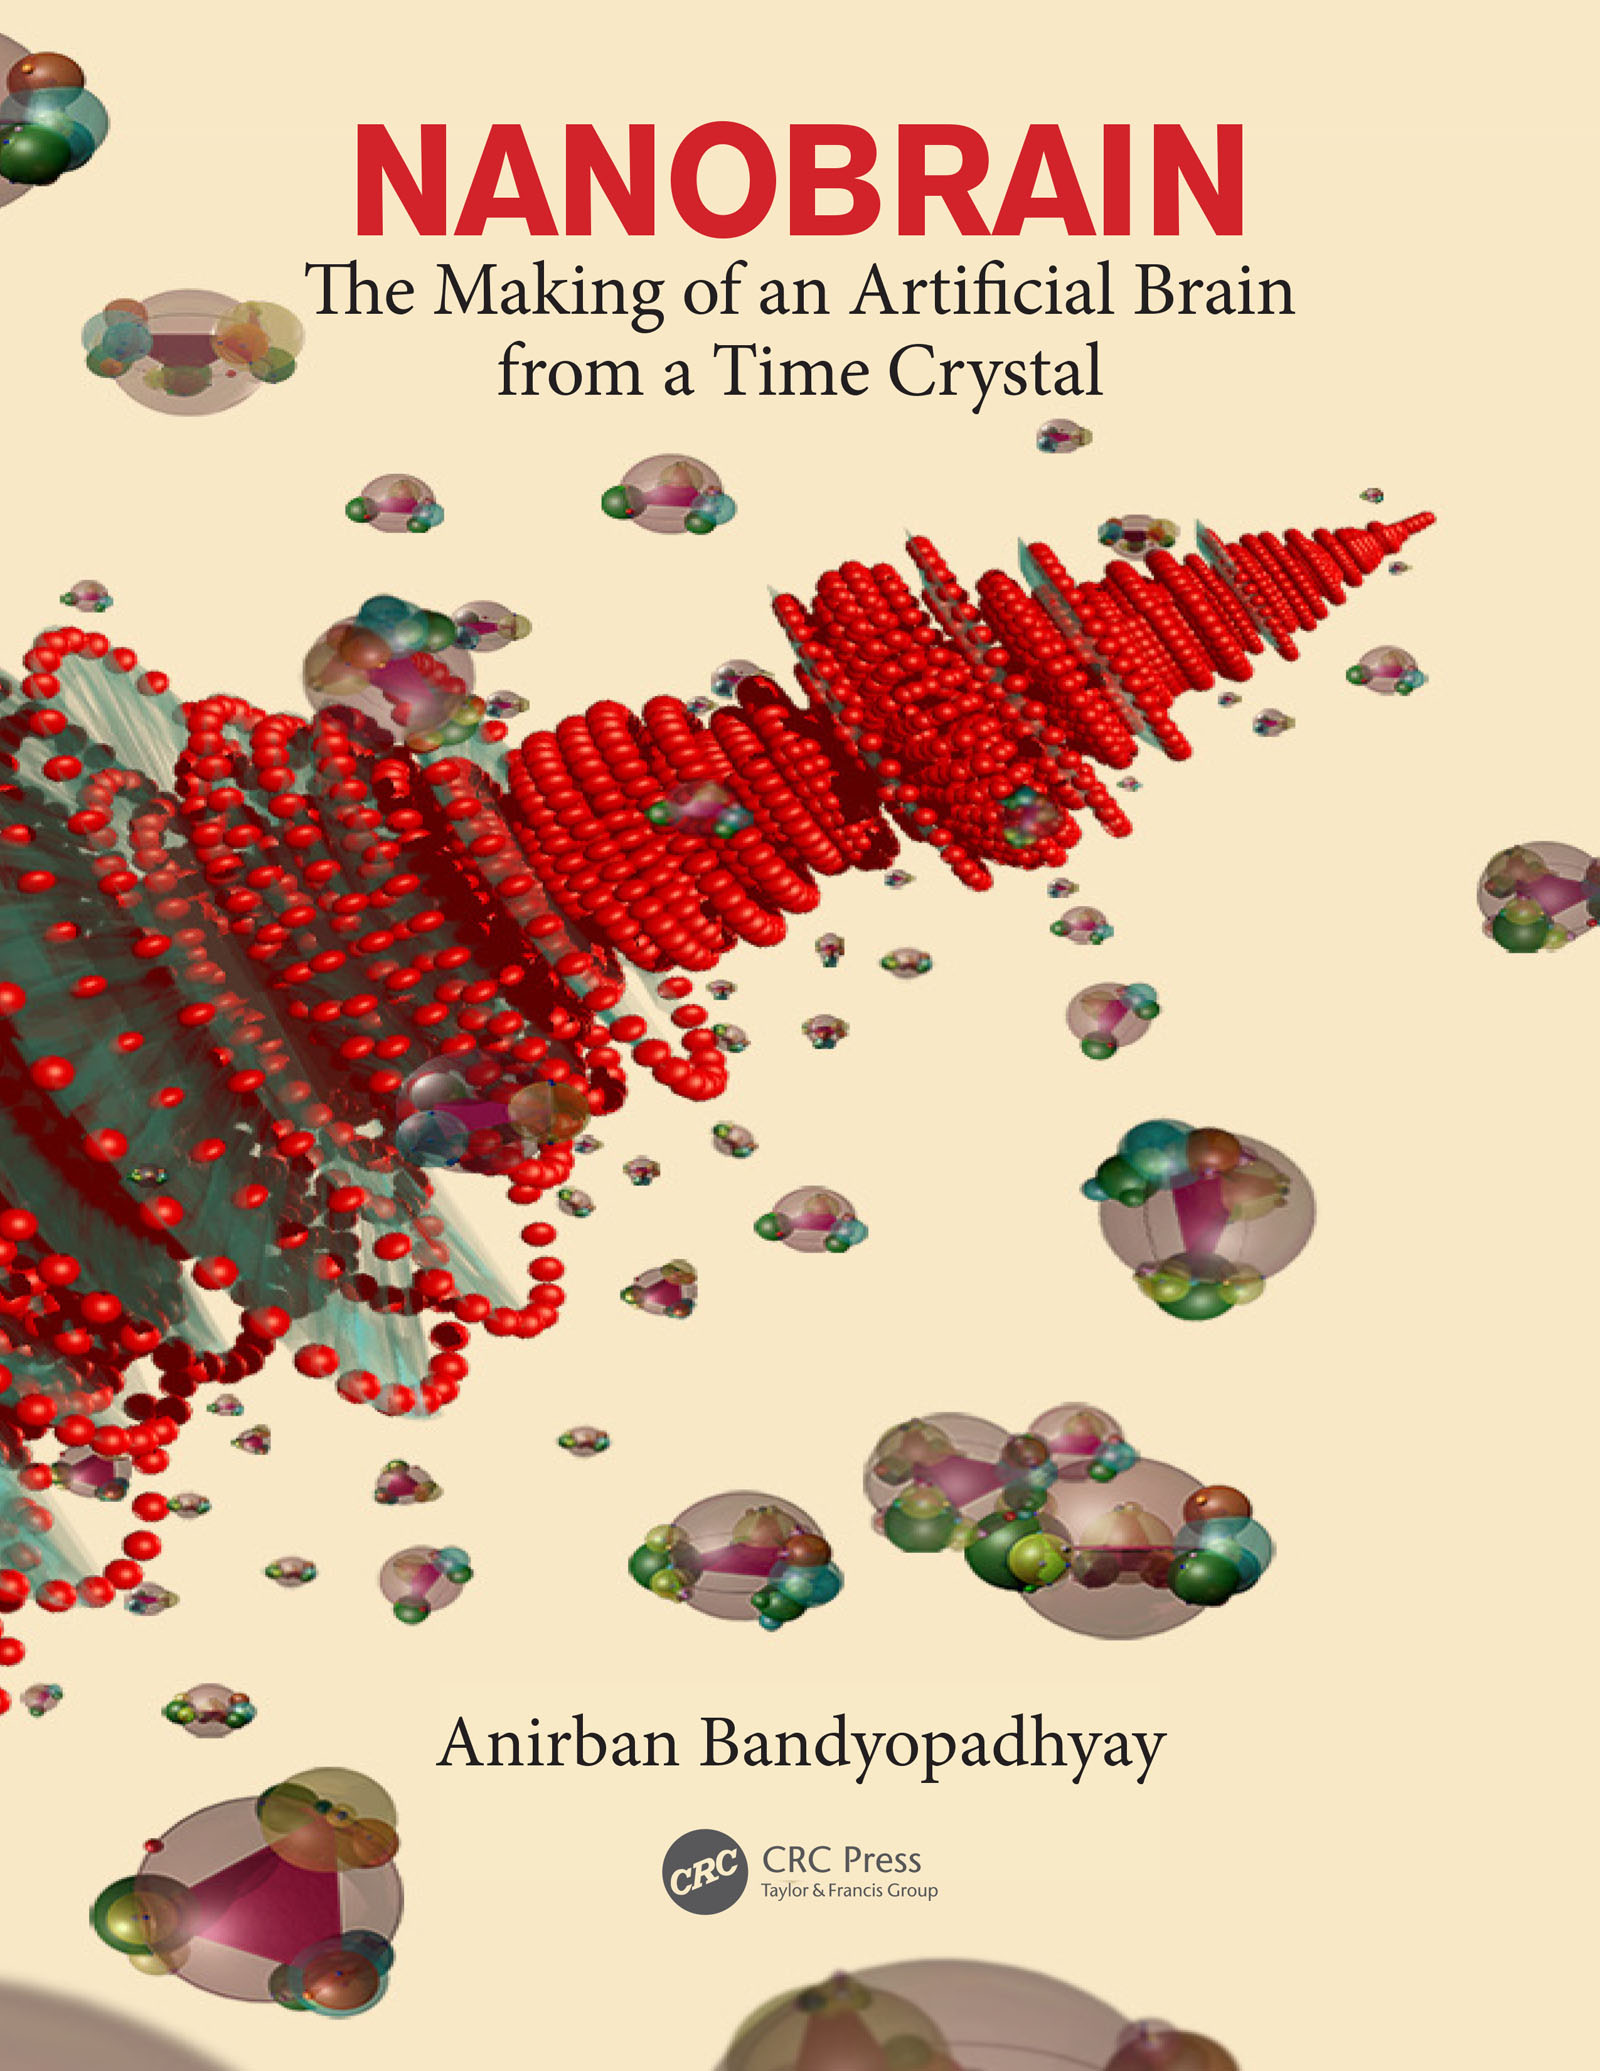 Nanobrain: The Making of an Artificial Brain from a Time Crystal book cover